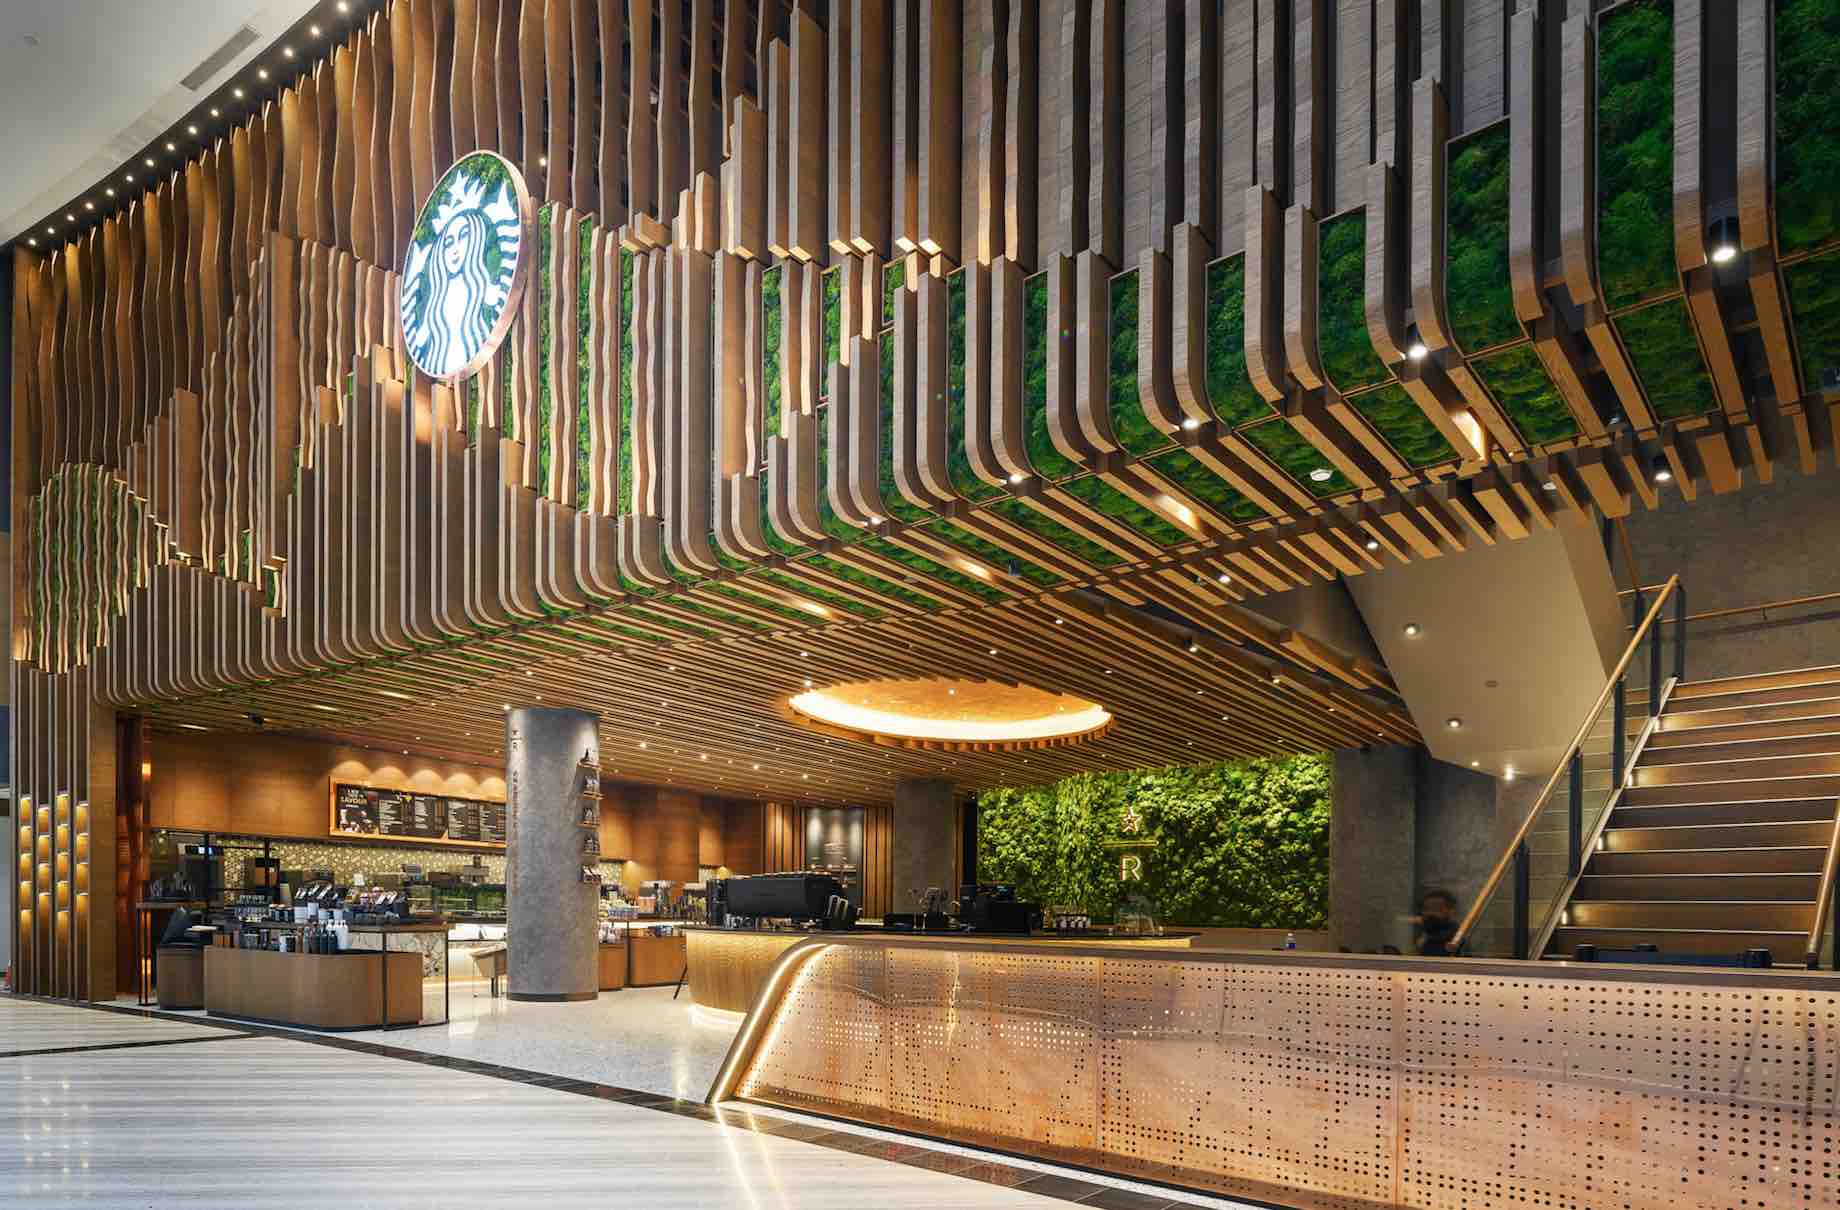 Starbucks Jewel Changi Airport Singapore Flagship With